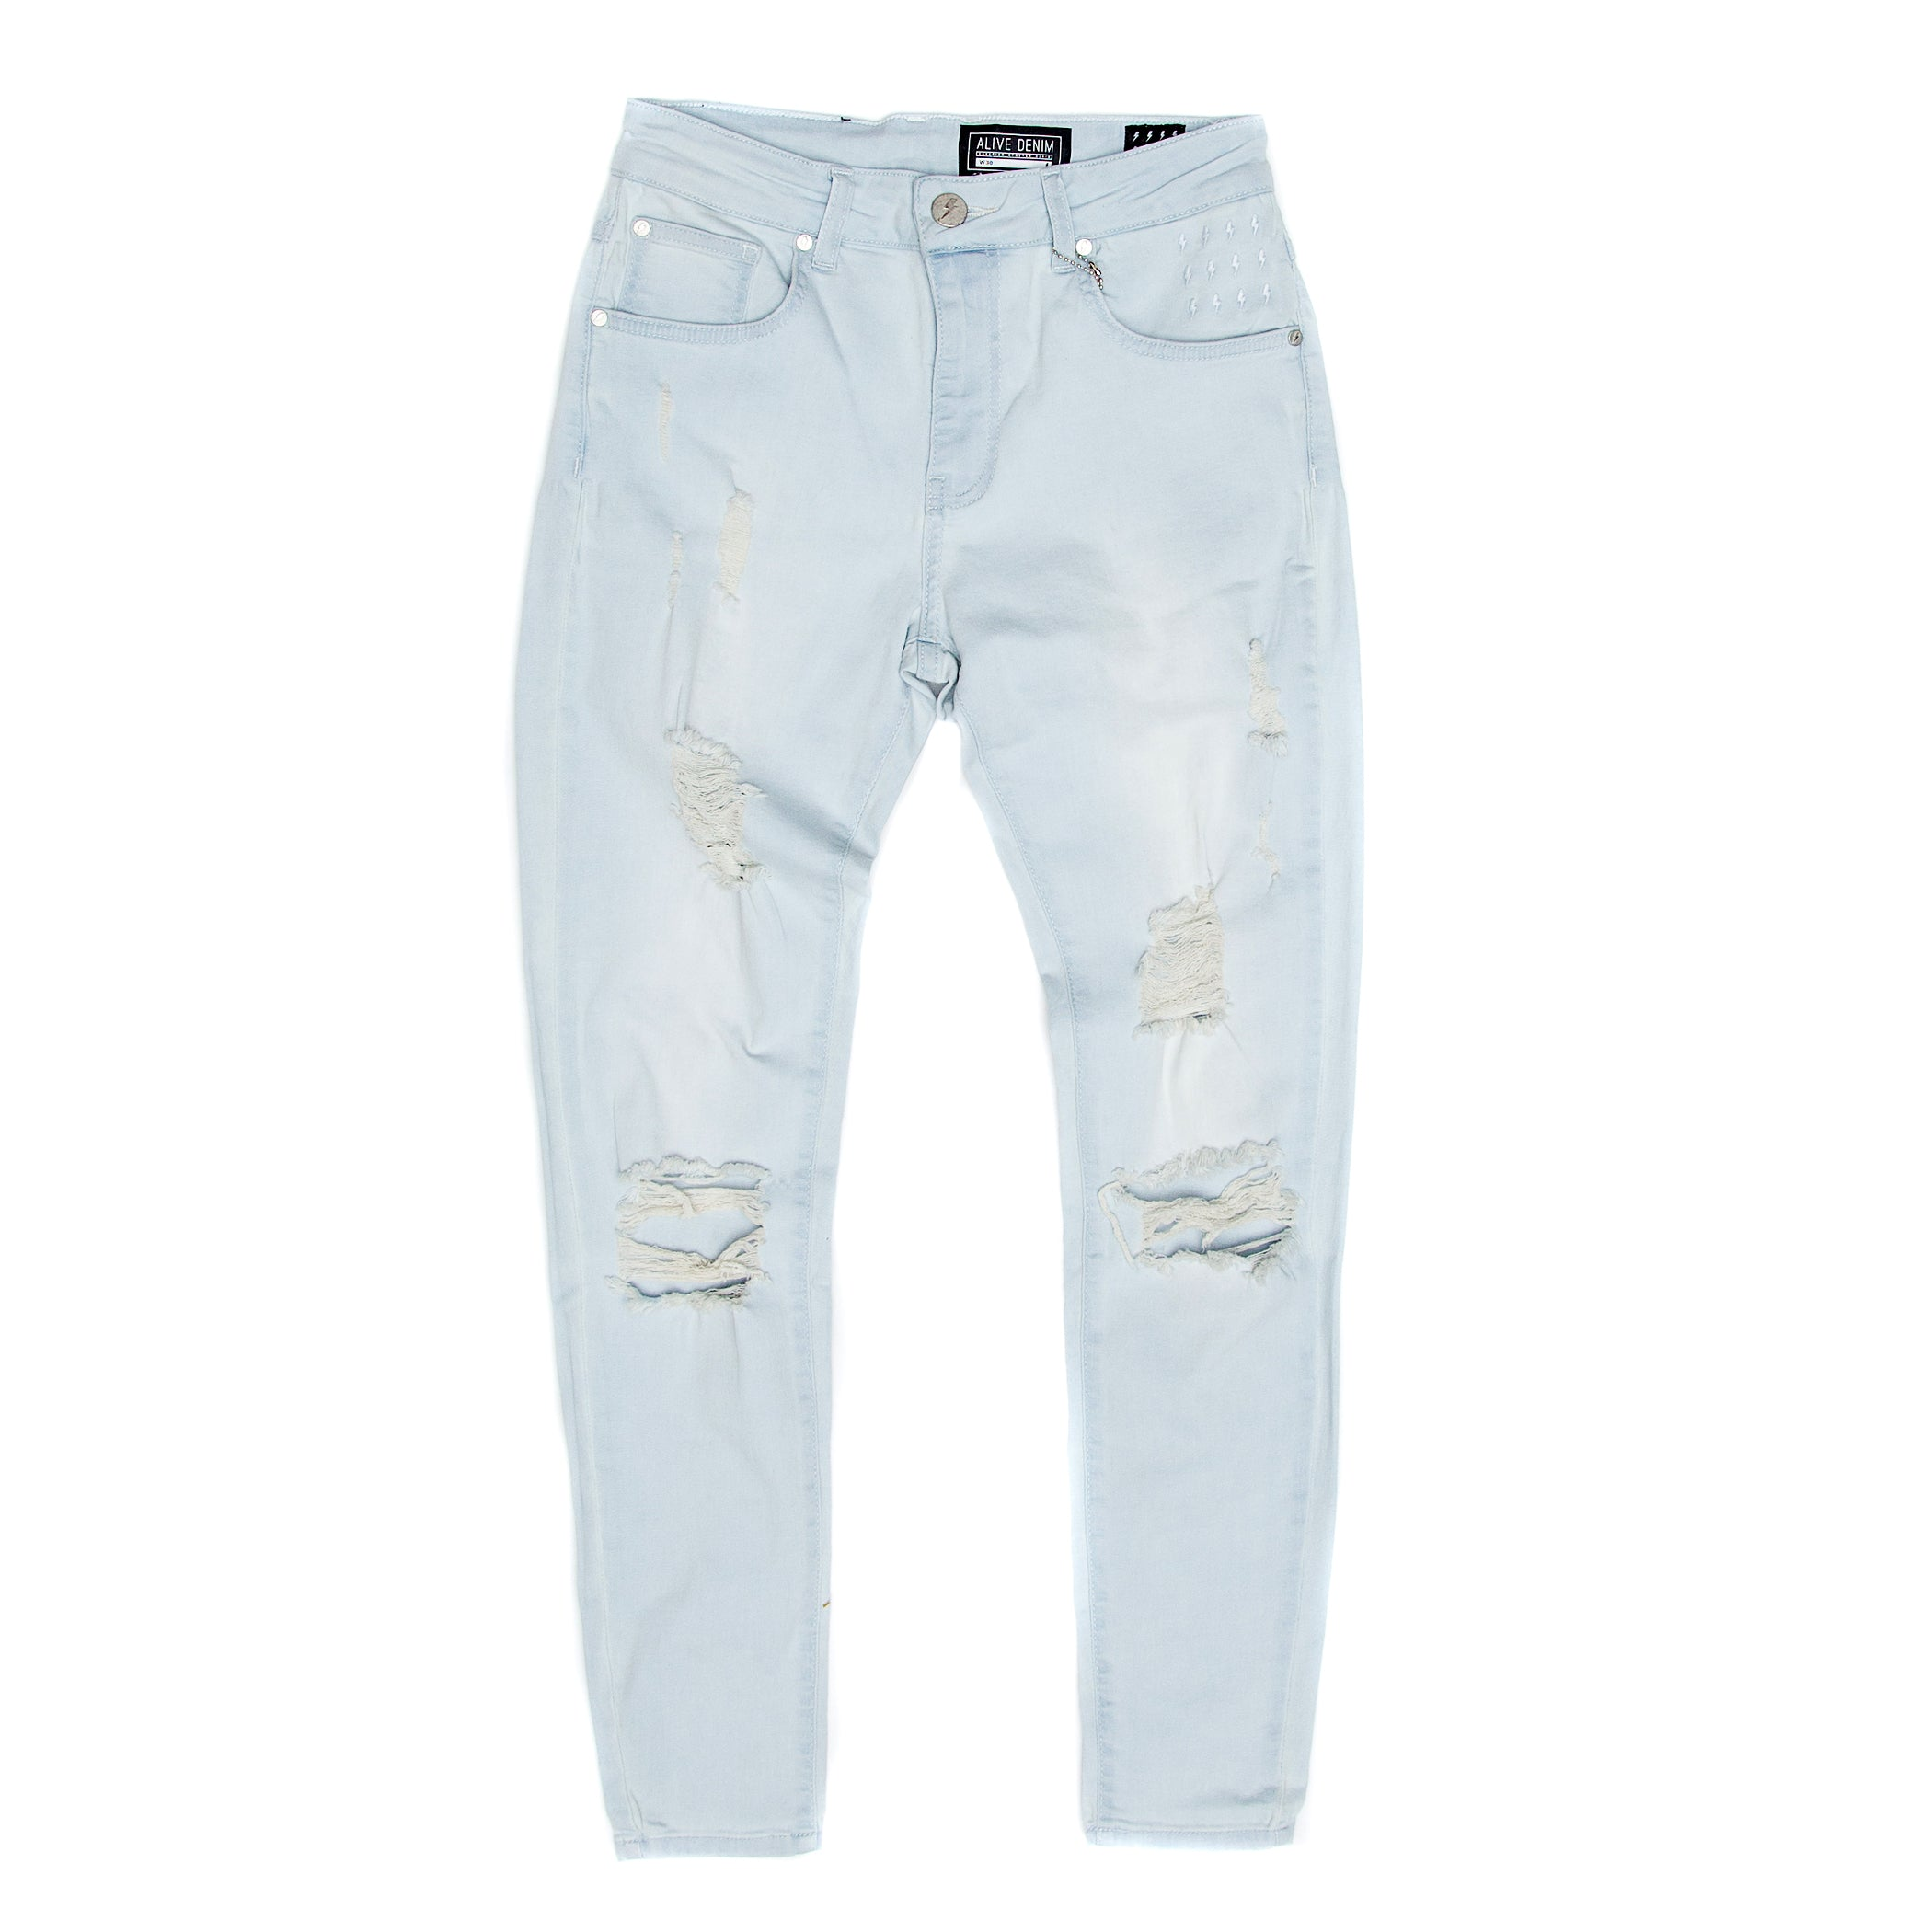 Alive Denim - Worn Jeans